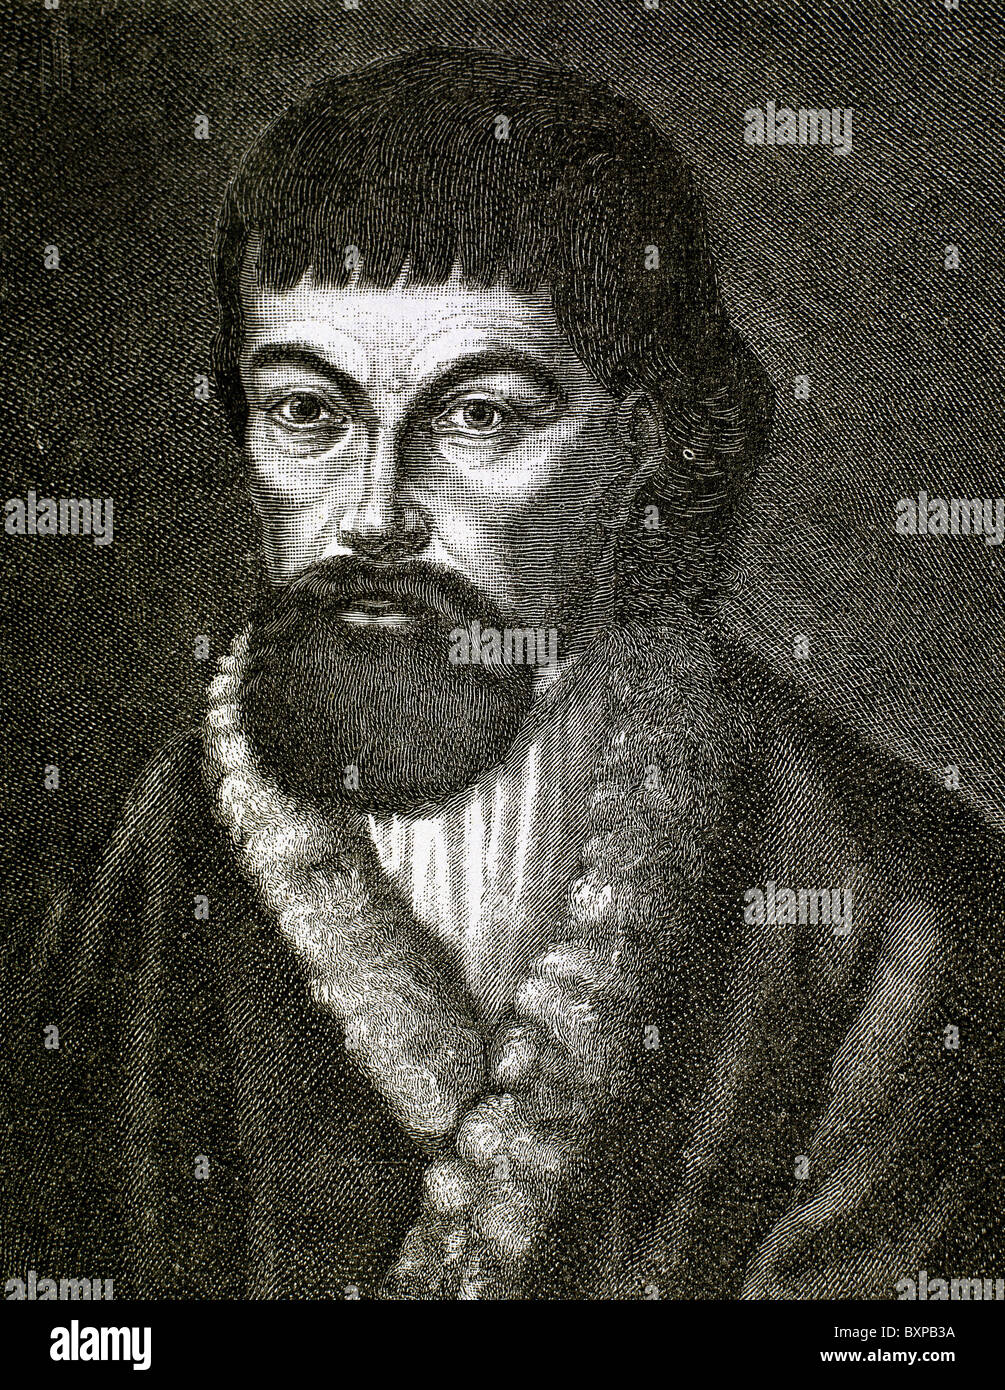 Yemelyan Pugachev (1742-1775). Pretender to the Russian throne. - Stock Image